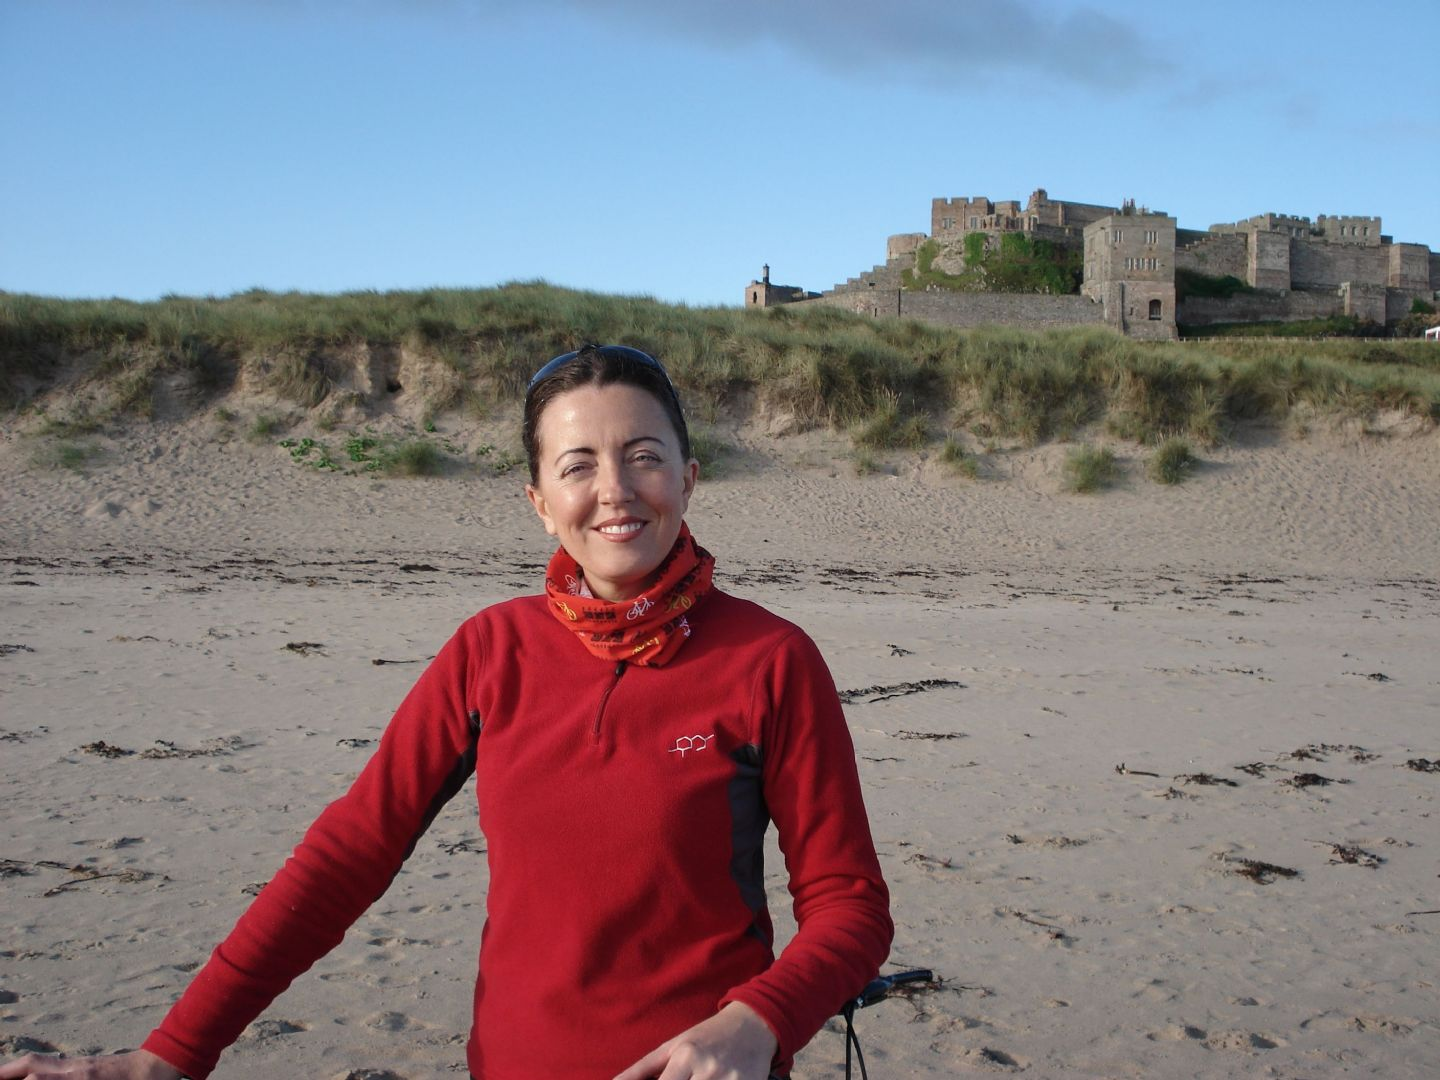 DSC03202.JPG - UK - Coast and Castles - Self-Guided Leisure Cycling Holiday - Leisure Cycling